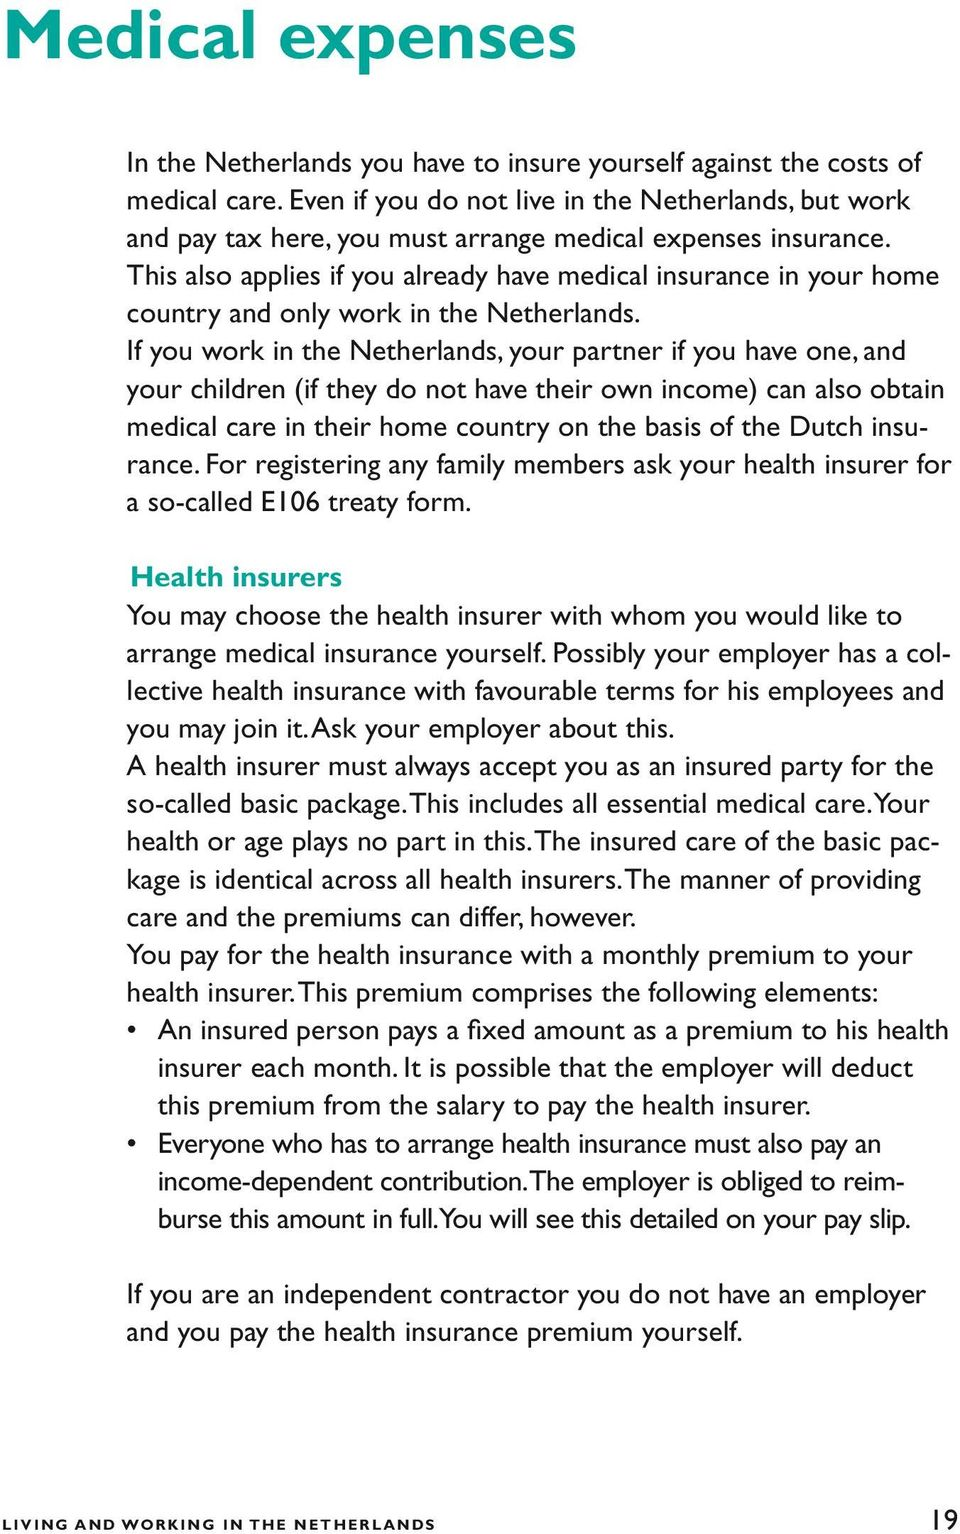 This also applies if you already have medical insurance in your home country and only work in the Netherlands.